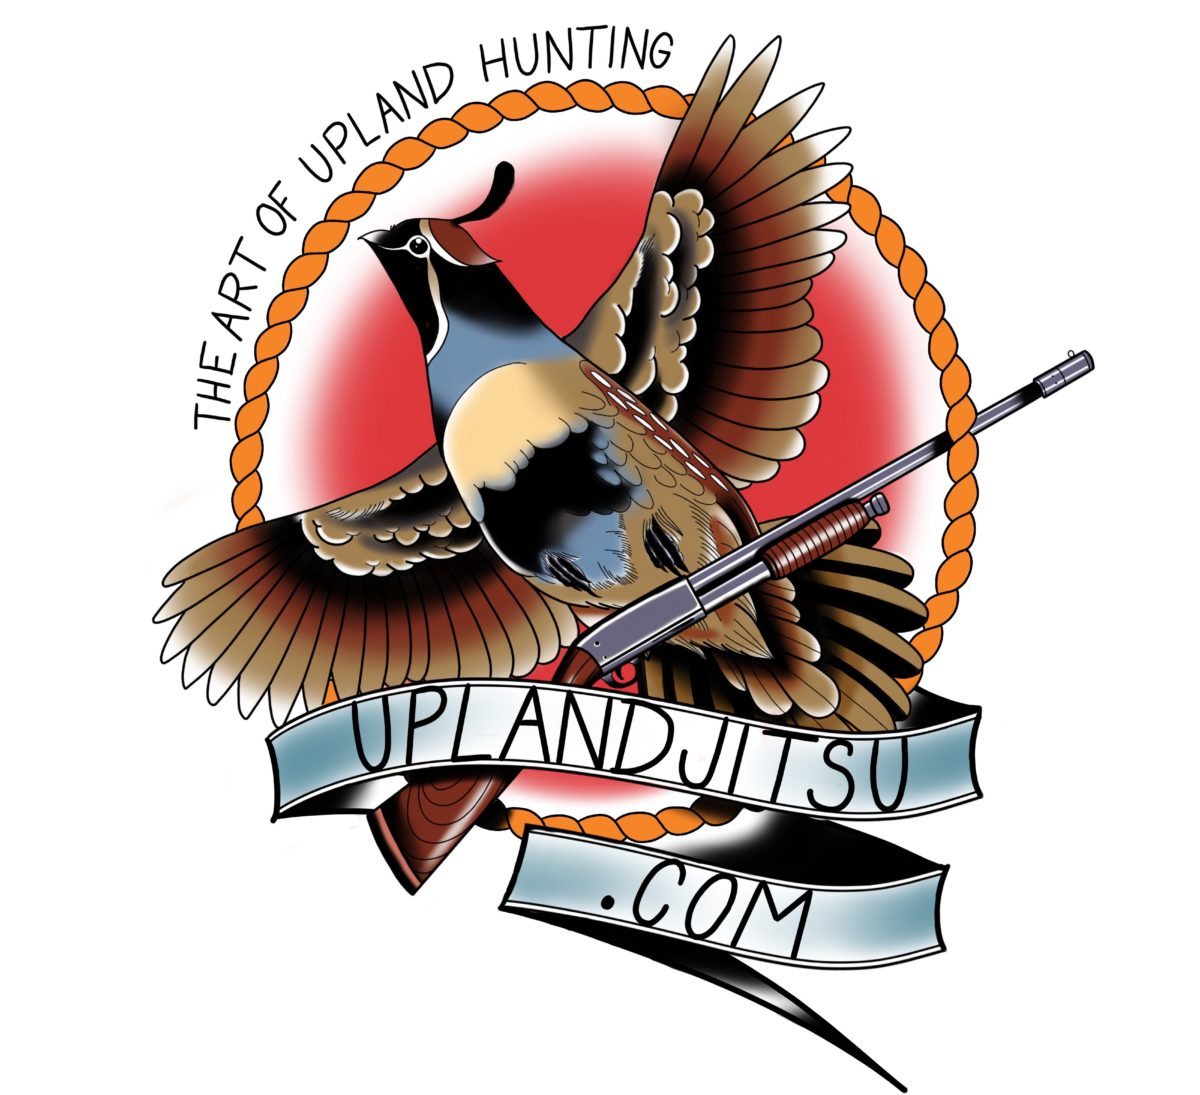 UplandJitsu.com – The Art of Upland Hunting